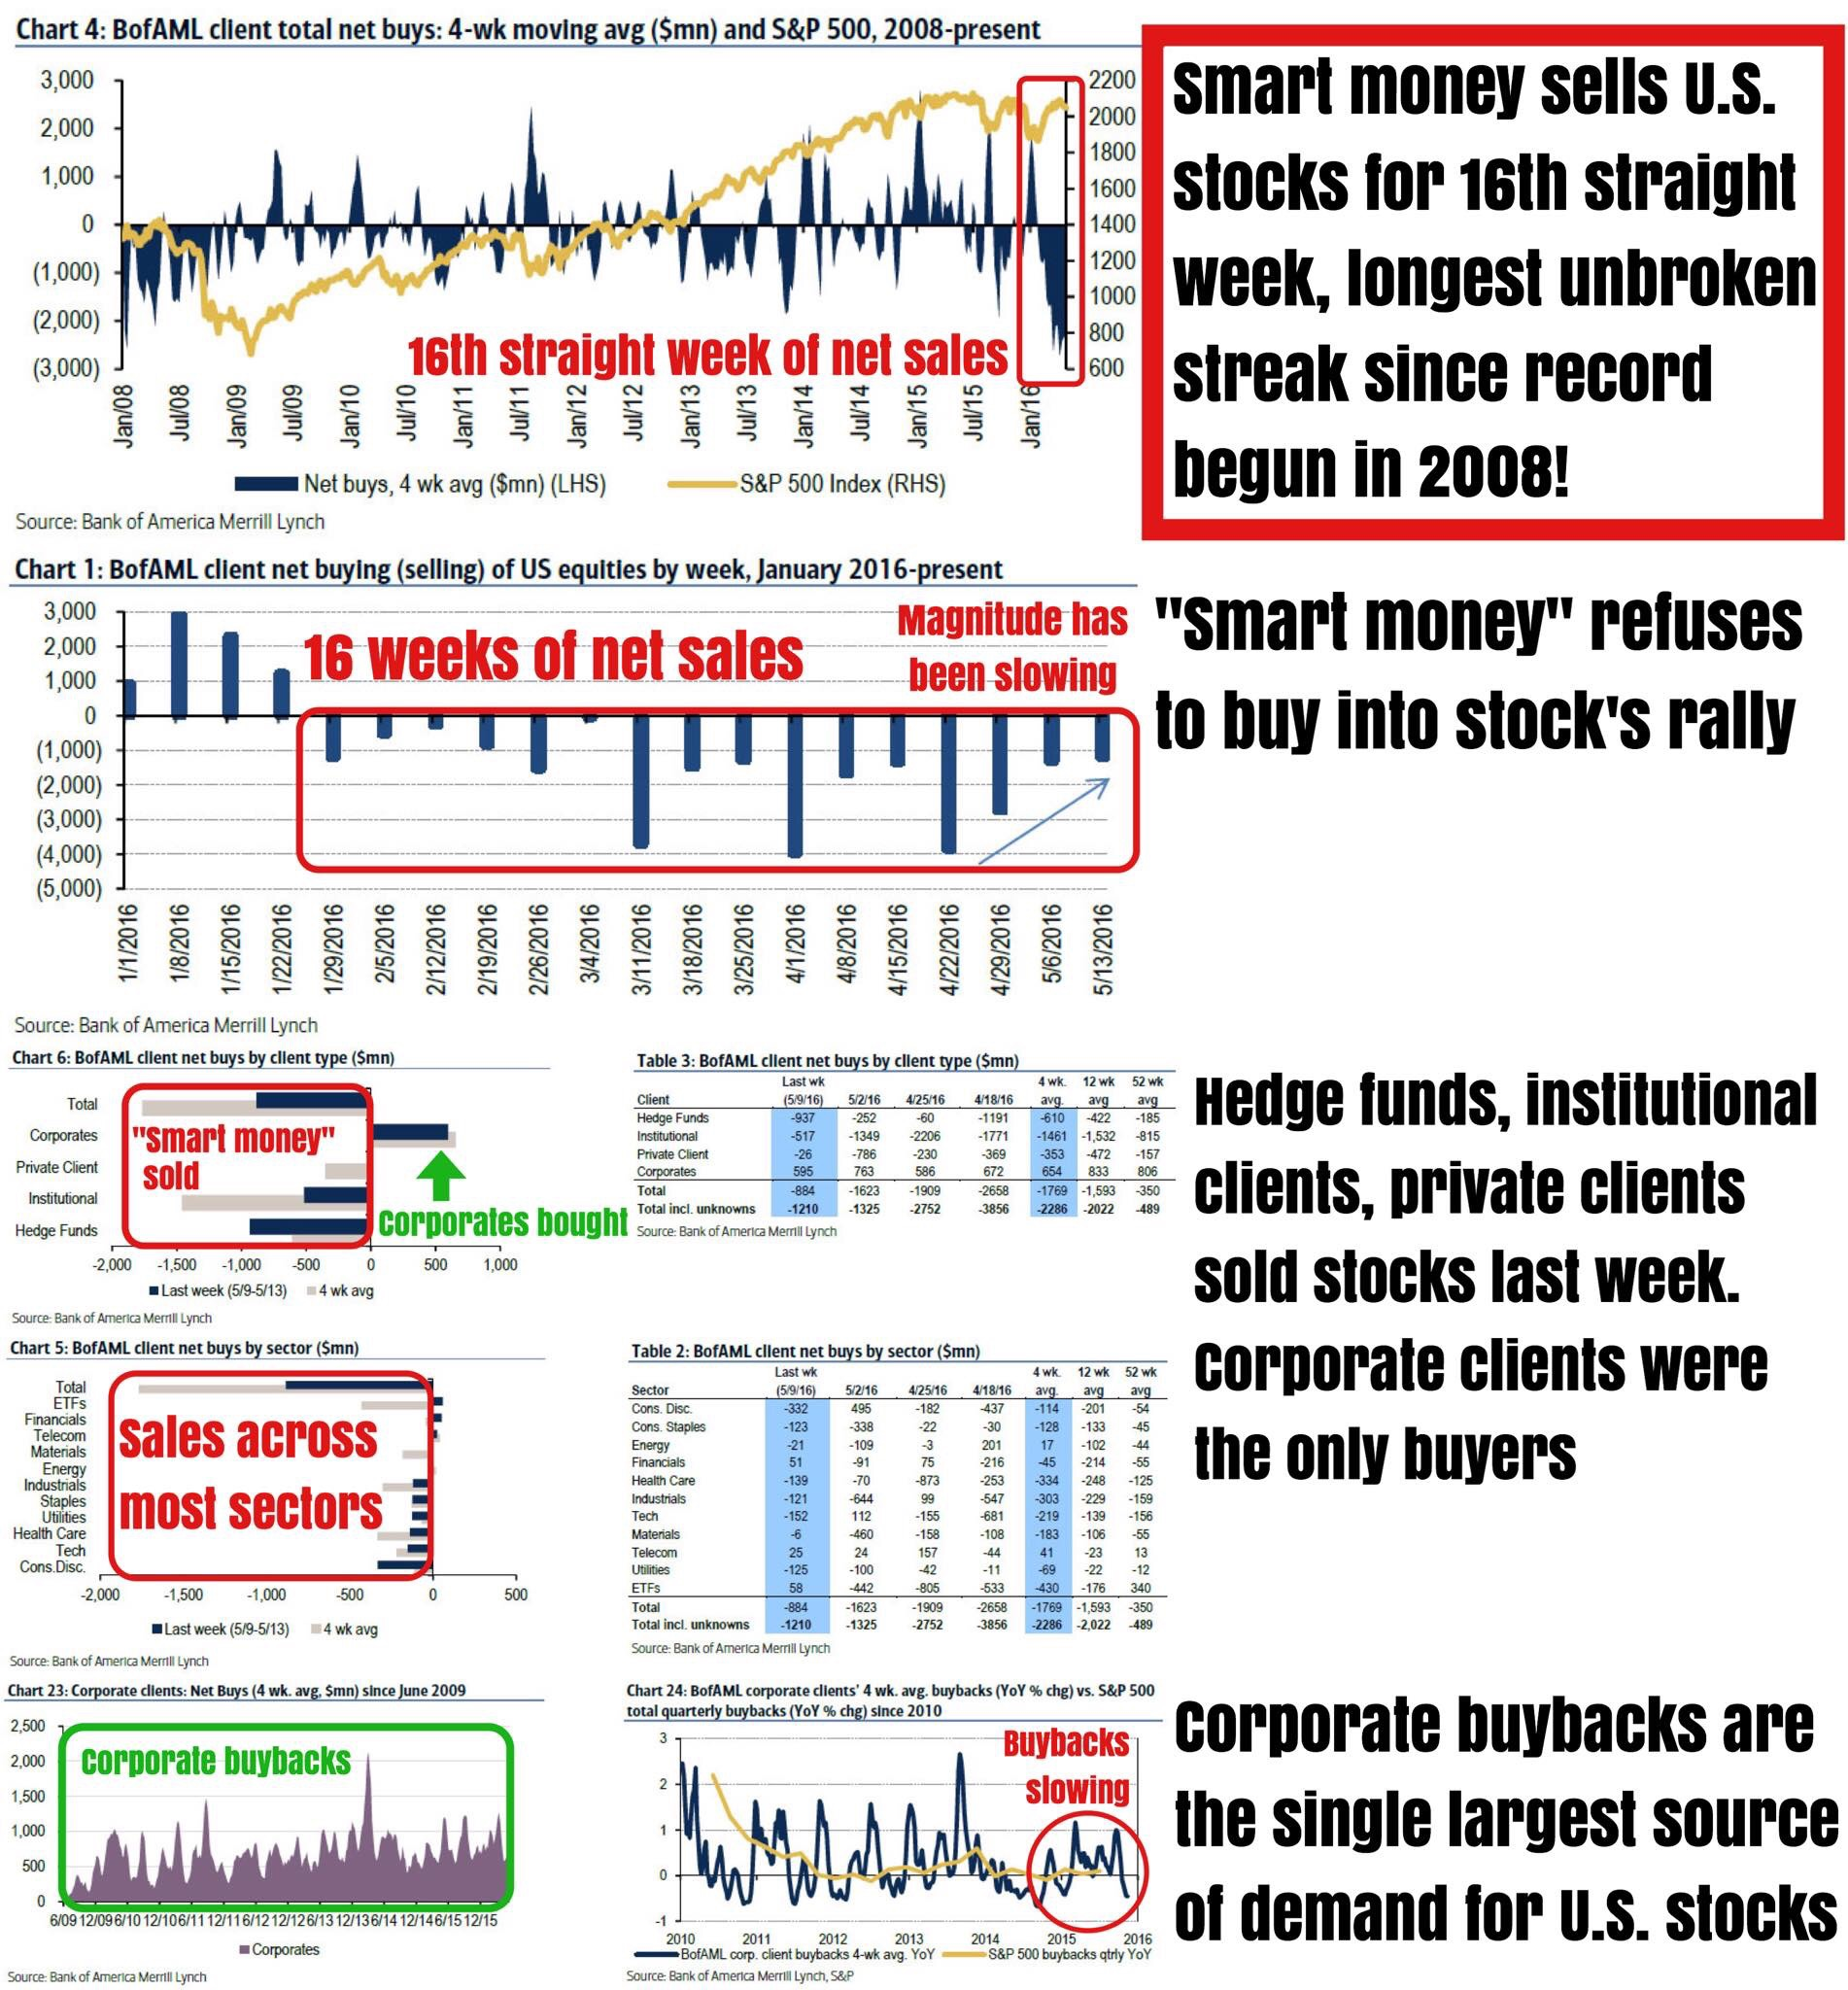 """""""16 weeks. 16 unbroken weeks of straight out selling by """"smart money"""", making this the longest ever streak on record. For the last 6 weeks we have been painstakingly documenting what this group of the so called """"smart money"""" (made up of hedge funds, institutional clients, and private clients) have been doing with their money. They have been selling, and happily away as the broad stock market has gone just about no where in the last 4 months.    Honestly, we're sick and tired of reporting on this each week, where we'll almost certainly know next week brings the streak to 17, then to 18, and so on. You get the point. It's an incredibly stubborn trend, which although shows signs of weakening, should be not be turning anytime soon absent a huge swing in stock prices (which itself is not as likely as one might believe).    So, we leave you with BofAML's update via its weekly Client Flow Report:    """"Last week, during which the S&P 500 fell 0.5%, BofAML clients were net sellers of US stocks for the 16th consecutiveweek—continuing the longest uninterrupted selling streak in our data history (since '08).    Institutional and private clients were still sellers as well, but sales by these groups were both their smallest since Feb. Net sales were entirely in large caps last week, as both small and mid-caps saw net buying. Buybacks by our corporate clients decelerated last week, and month-to-date are tracking below typical May levels. Year-to-date, buybacks are tracking slightly above 2015 levels but below 2014 levels.    Net sales were led by Consumer Discretionary stocks, where misses from several retailers caused a sell-off in the sector last week. Health Care saw the next-largest outflows; this sector continues to have the longest selling streak at eleven consecutive weeks, hurt by a positioning unwind and political uncertainty in an election year Financials and Telecom stocks, plus ETFs, saw net buying last week; Telecom has the longest buying streak of any sector at three """